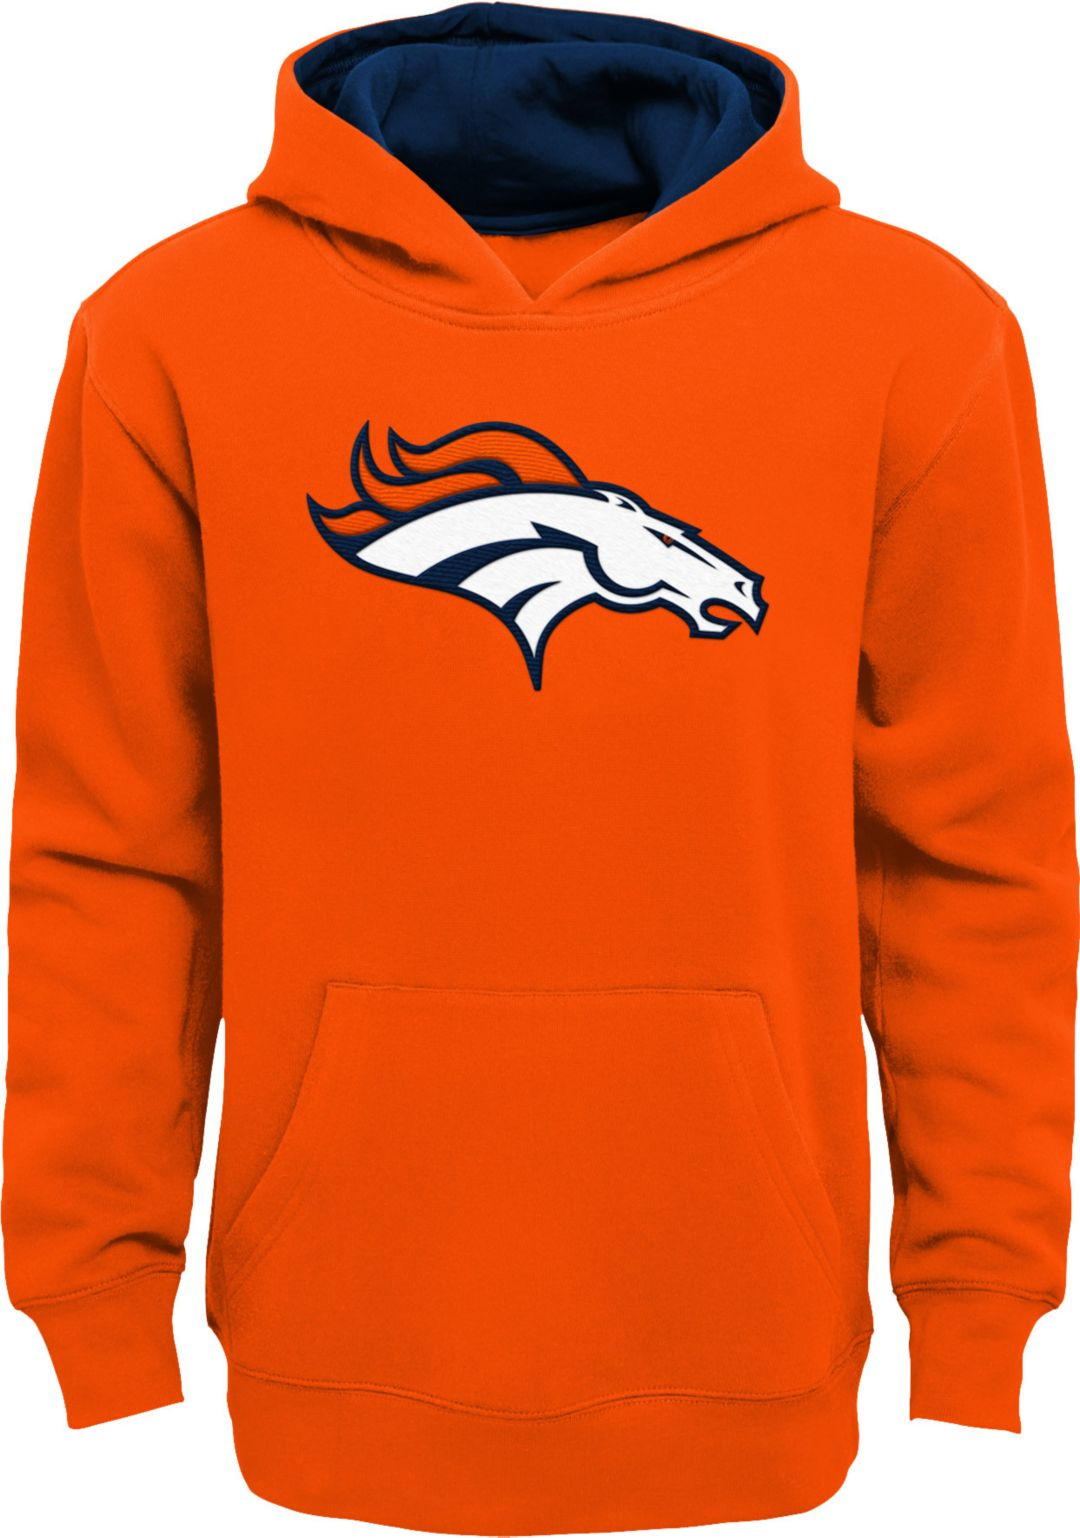 official photos 5b344 83f8f NFL Team Apparel Youth Denver Broncos Prime Orange Pullover Hoodie